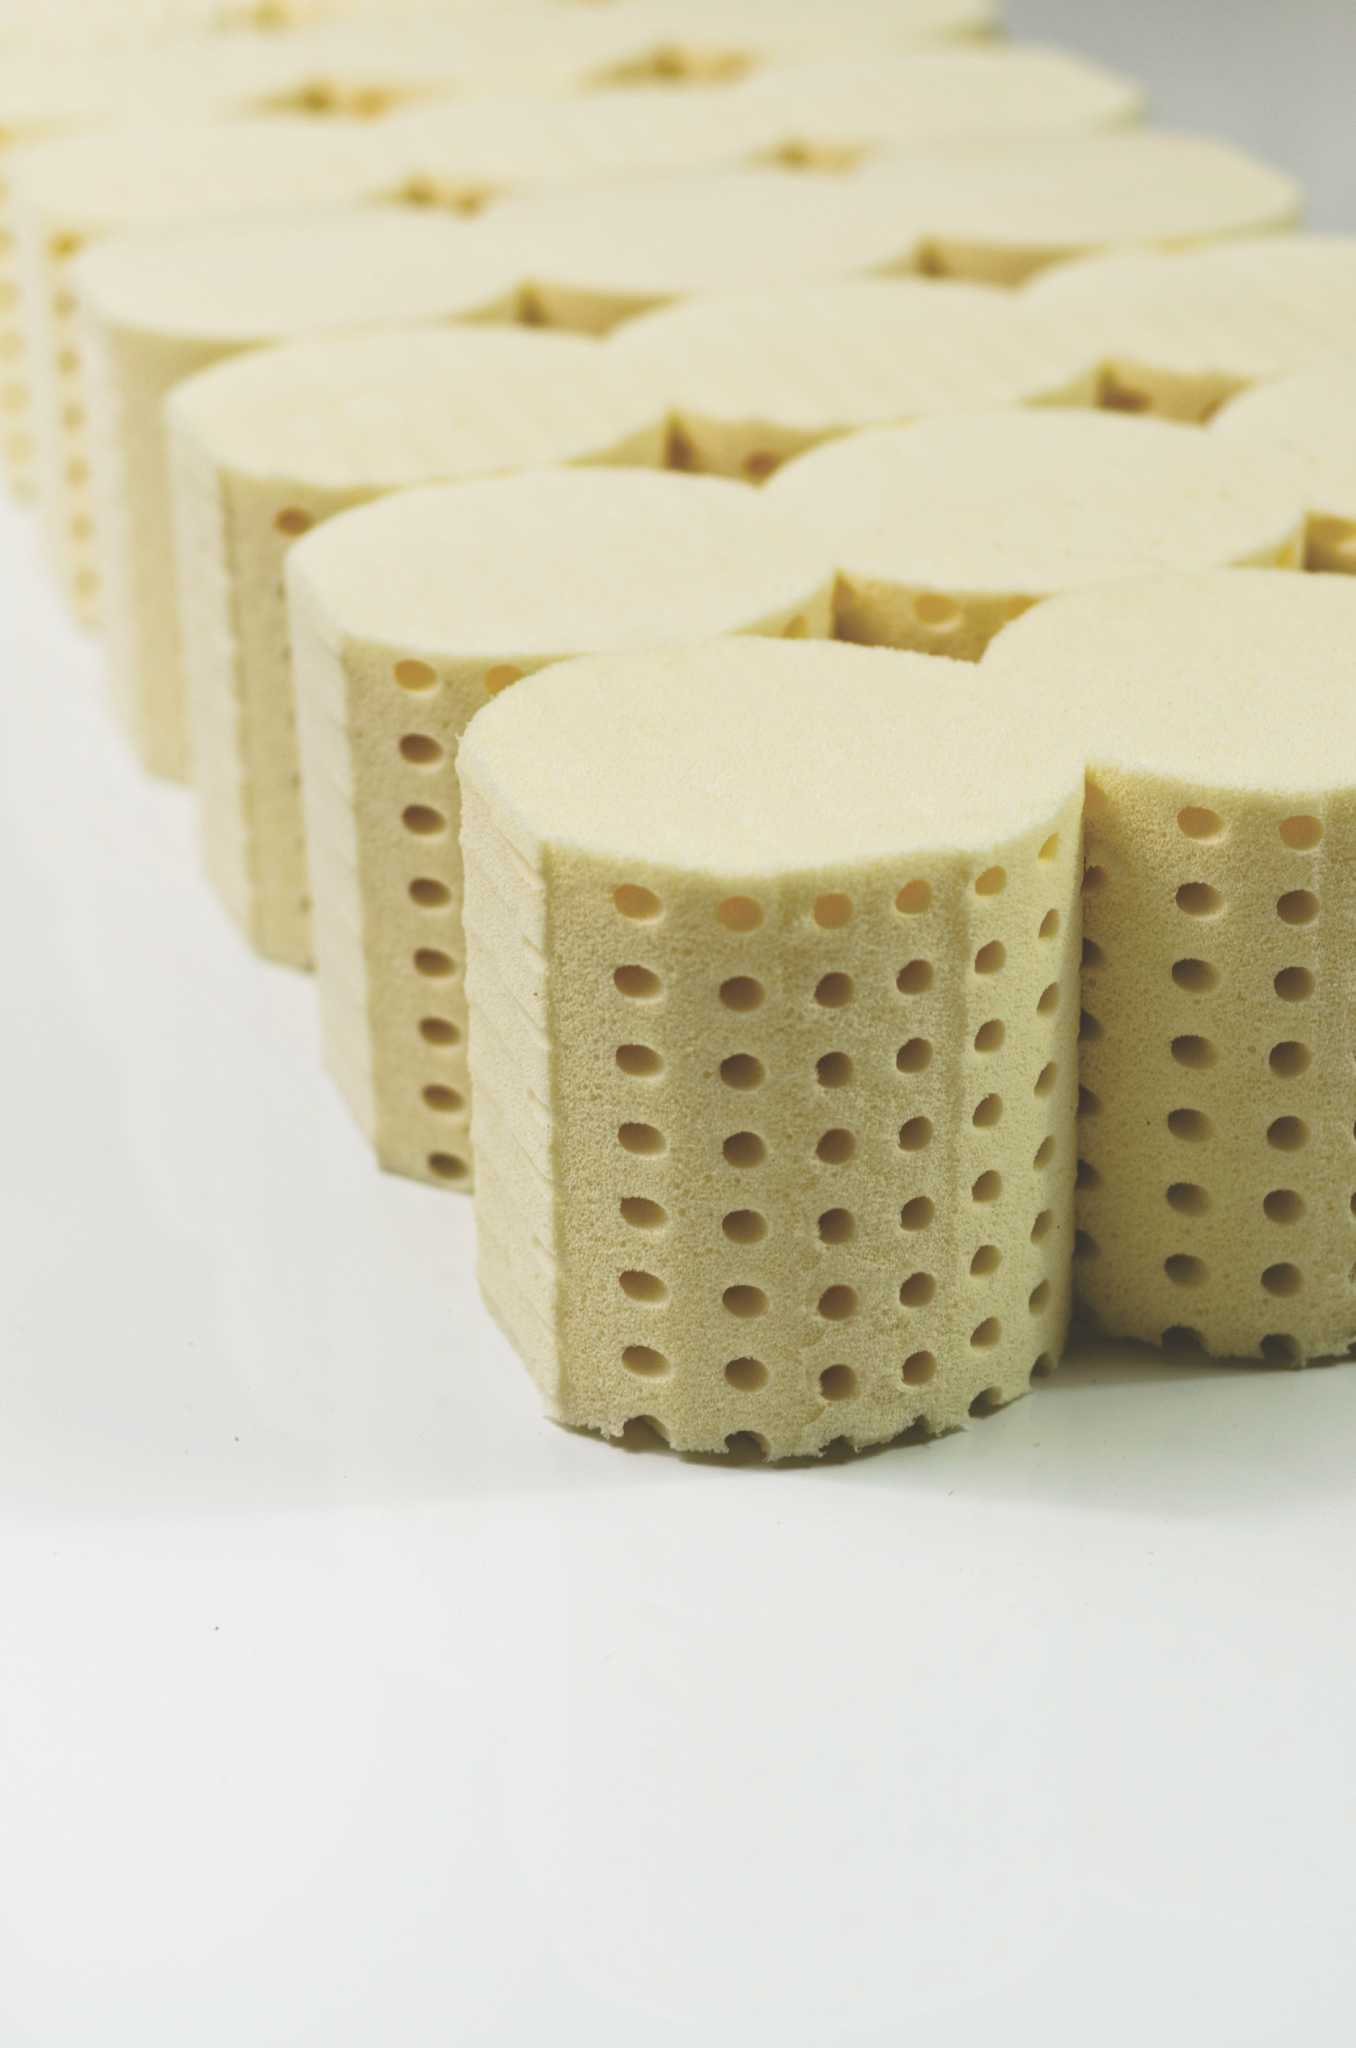 Latex International changes name to Talalay